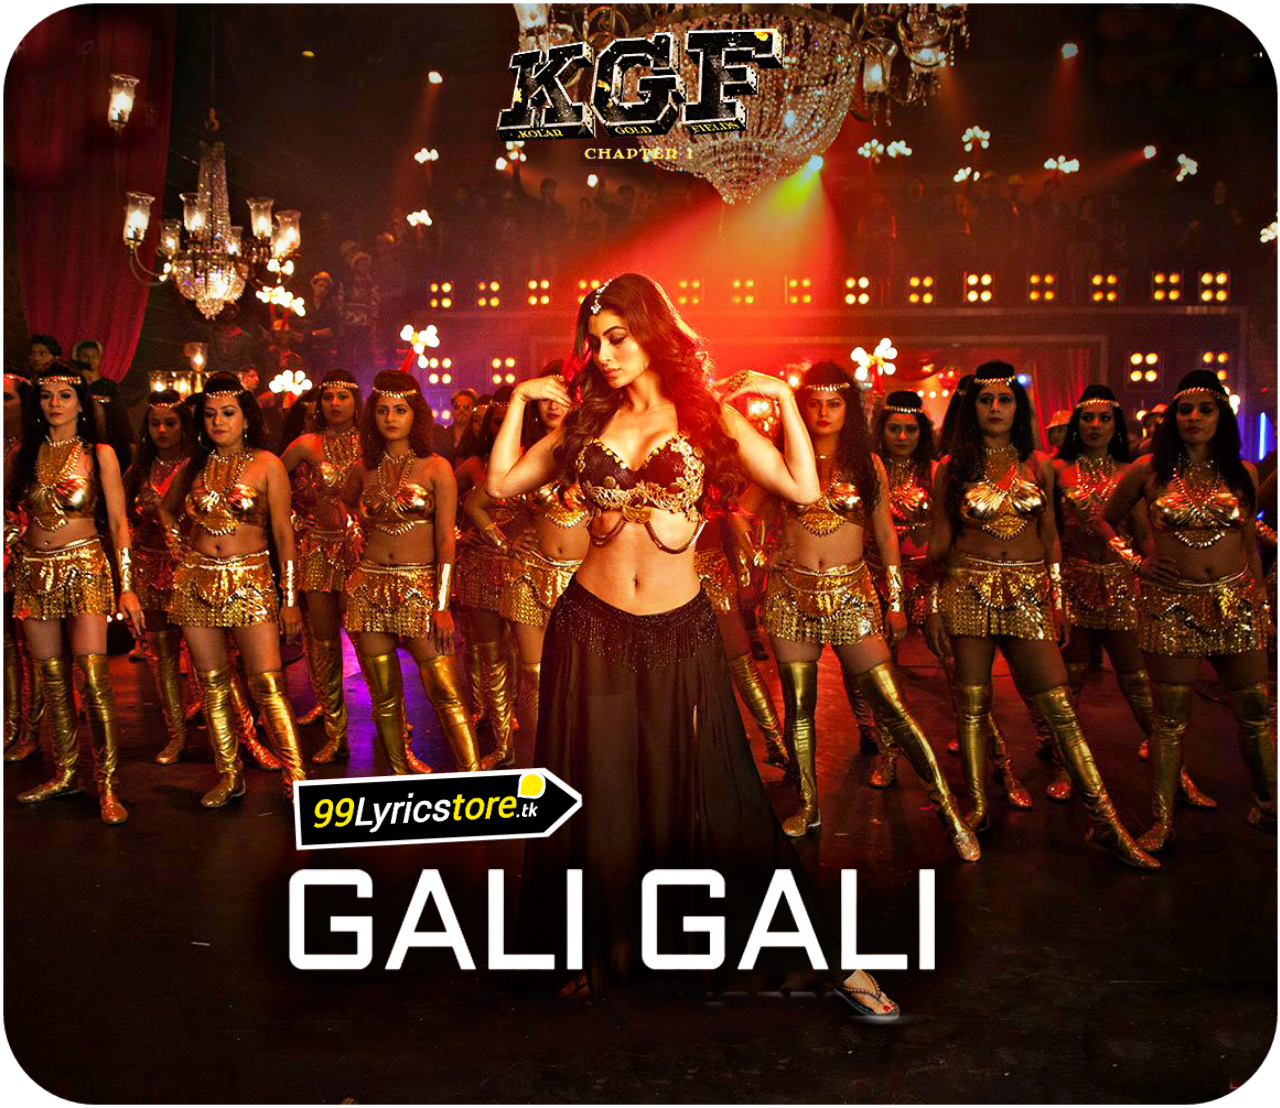 Gali Gali Song , KGF Chapter 1 Song Lyrics, KGF Chapter 1 Gali Gali Song Lyrics 2018, Mouni Roy Song Gali Gali Song Lyrics 2018